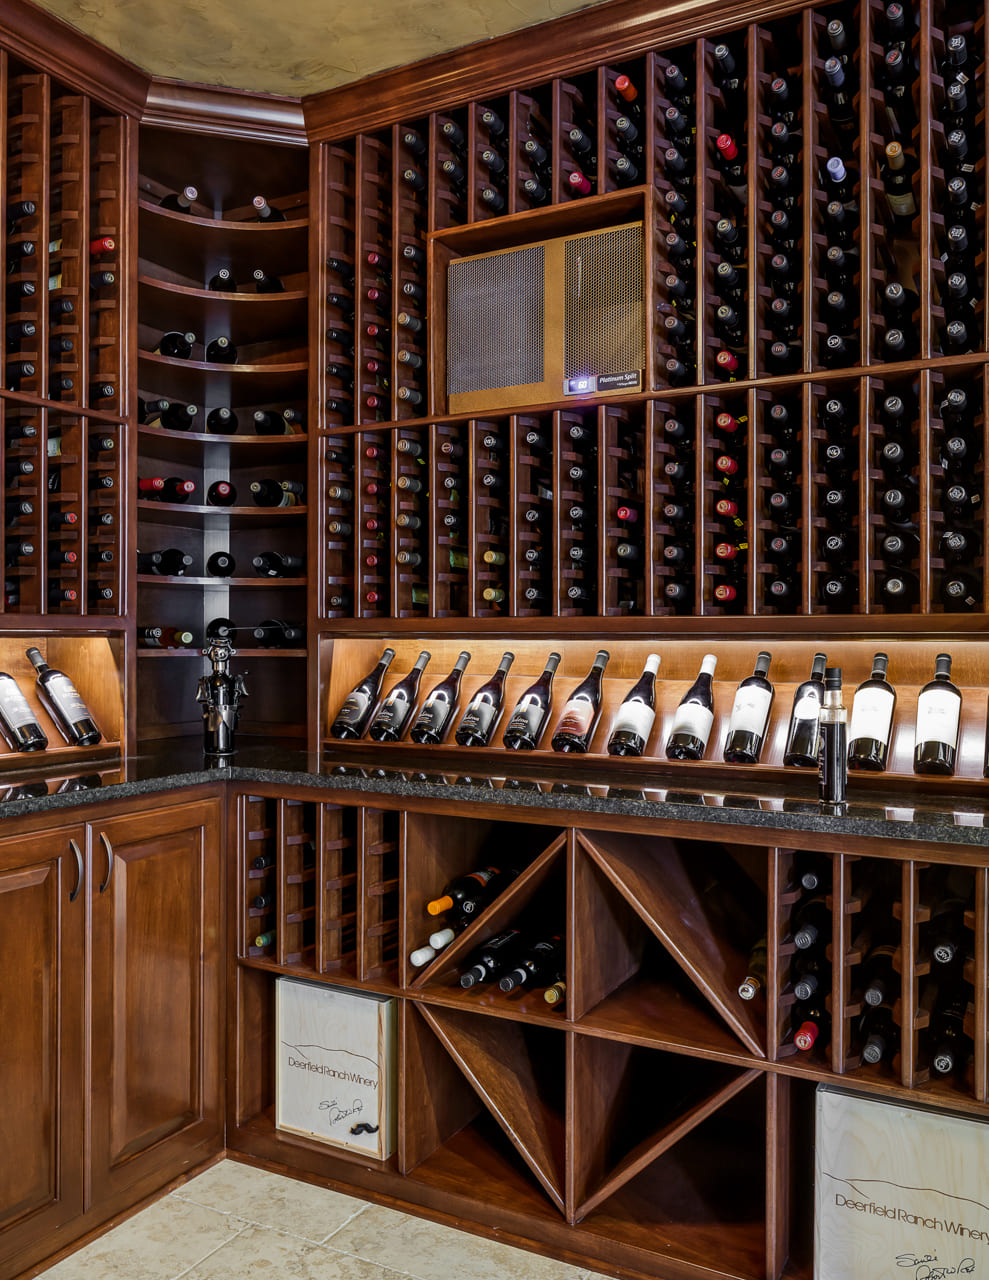 In-Home Wine Cellar with Custom Shelving in Walk Out Basement Remodel | Compelling Homes Des Moines, IA